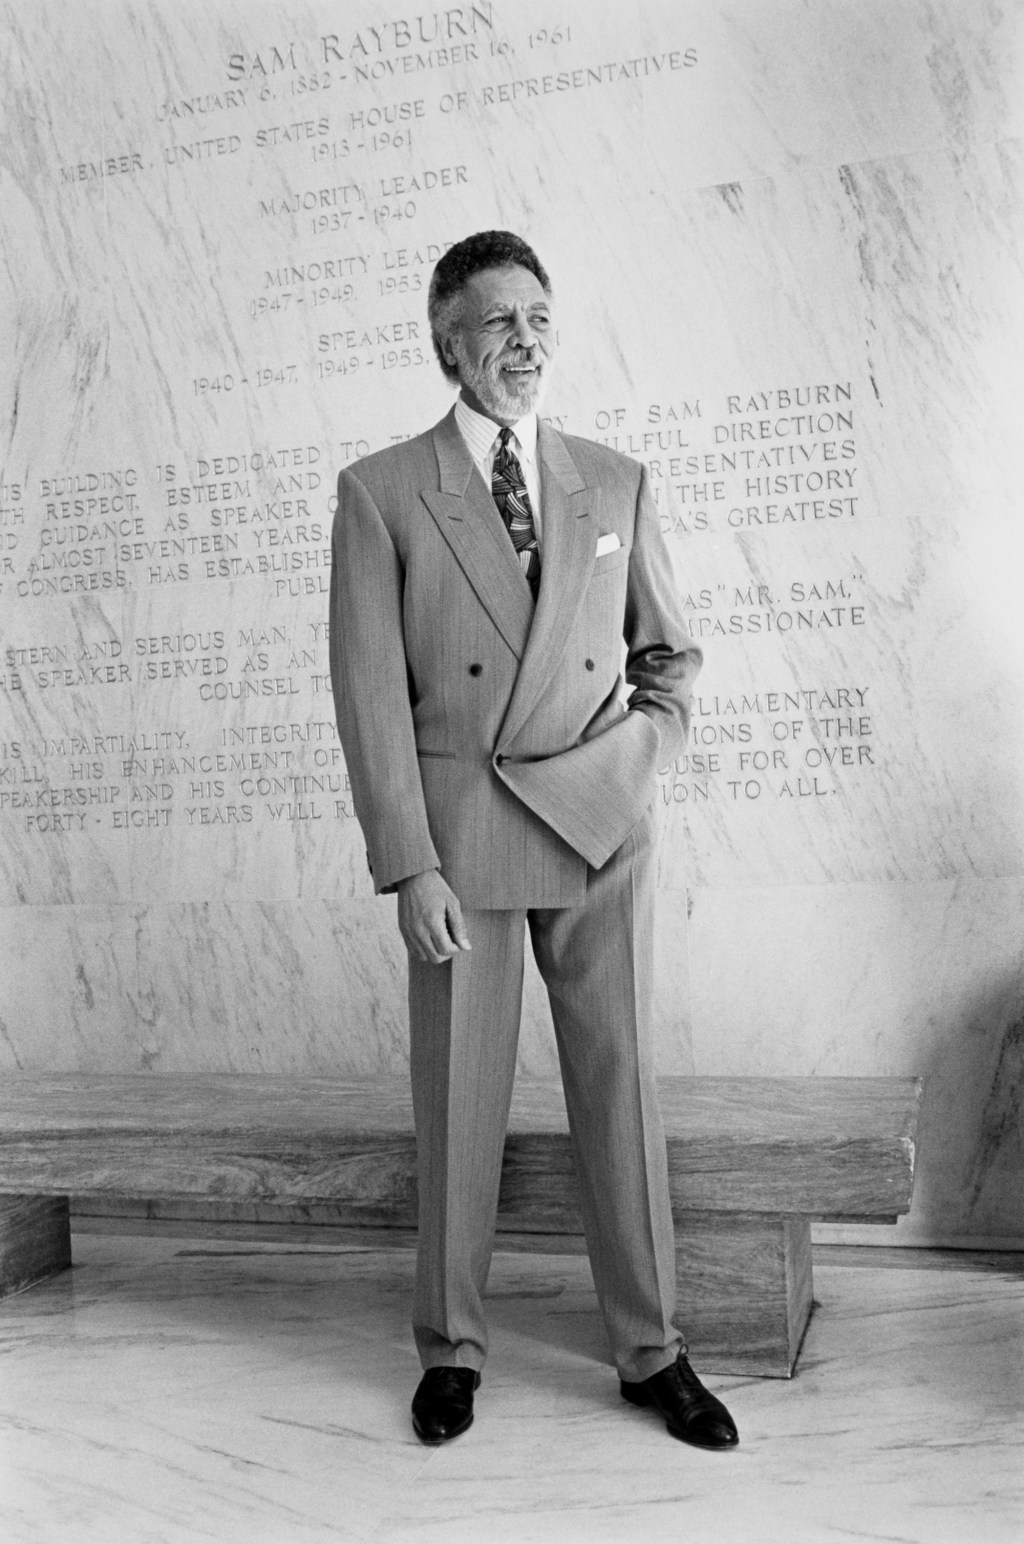 Rep. Ron Dellums, D-Calif. 1991. (Photo by Maureen Keating/CQ Roll Call)